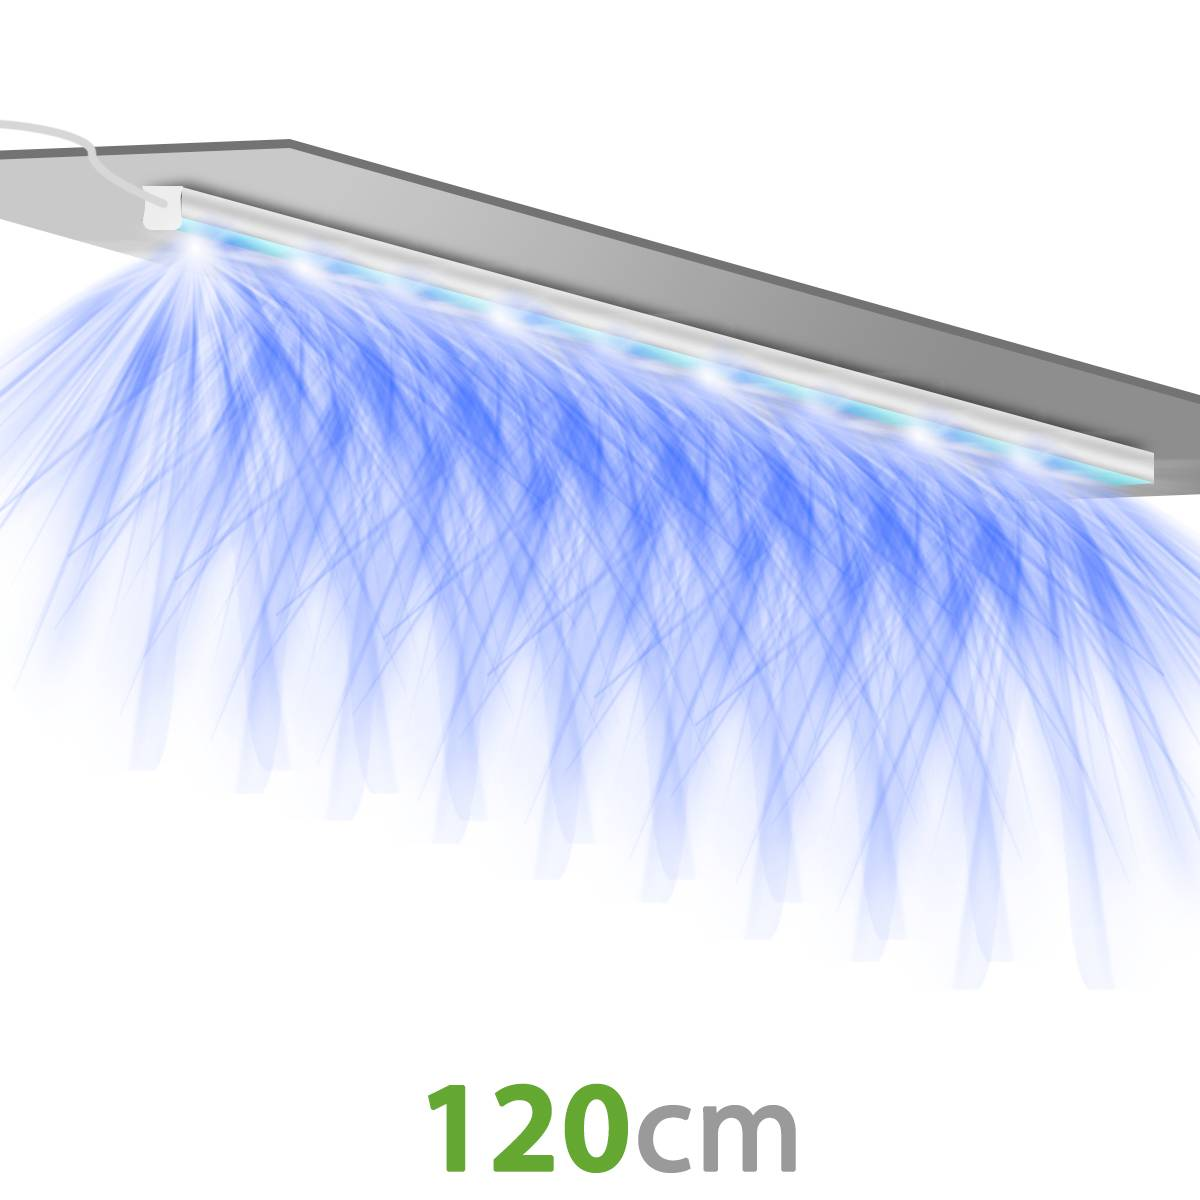 Pack x2 - SpectraPANEL X320 LED Horticultural Lamps - Connect your lamps together